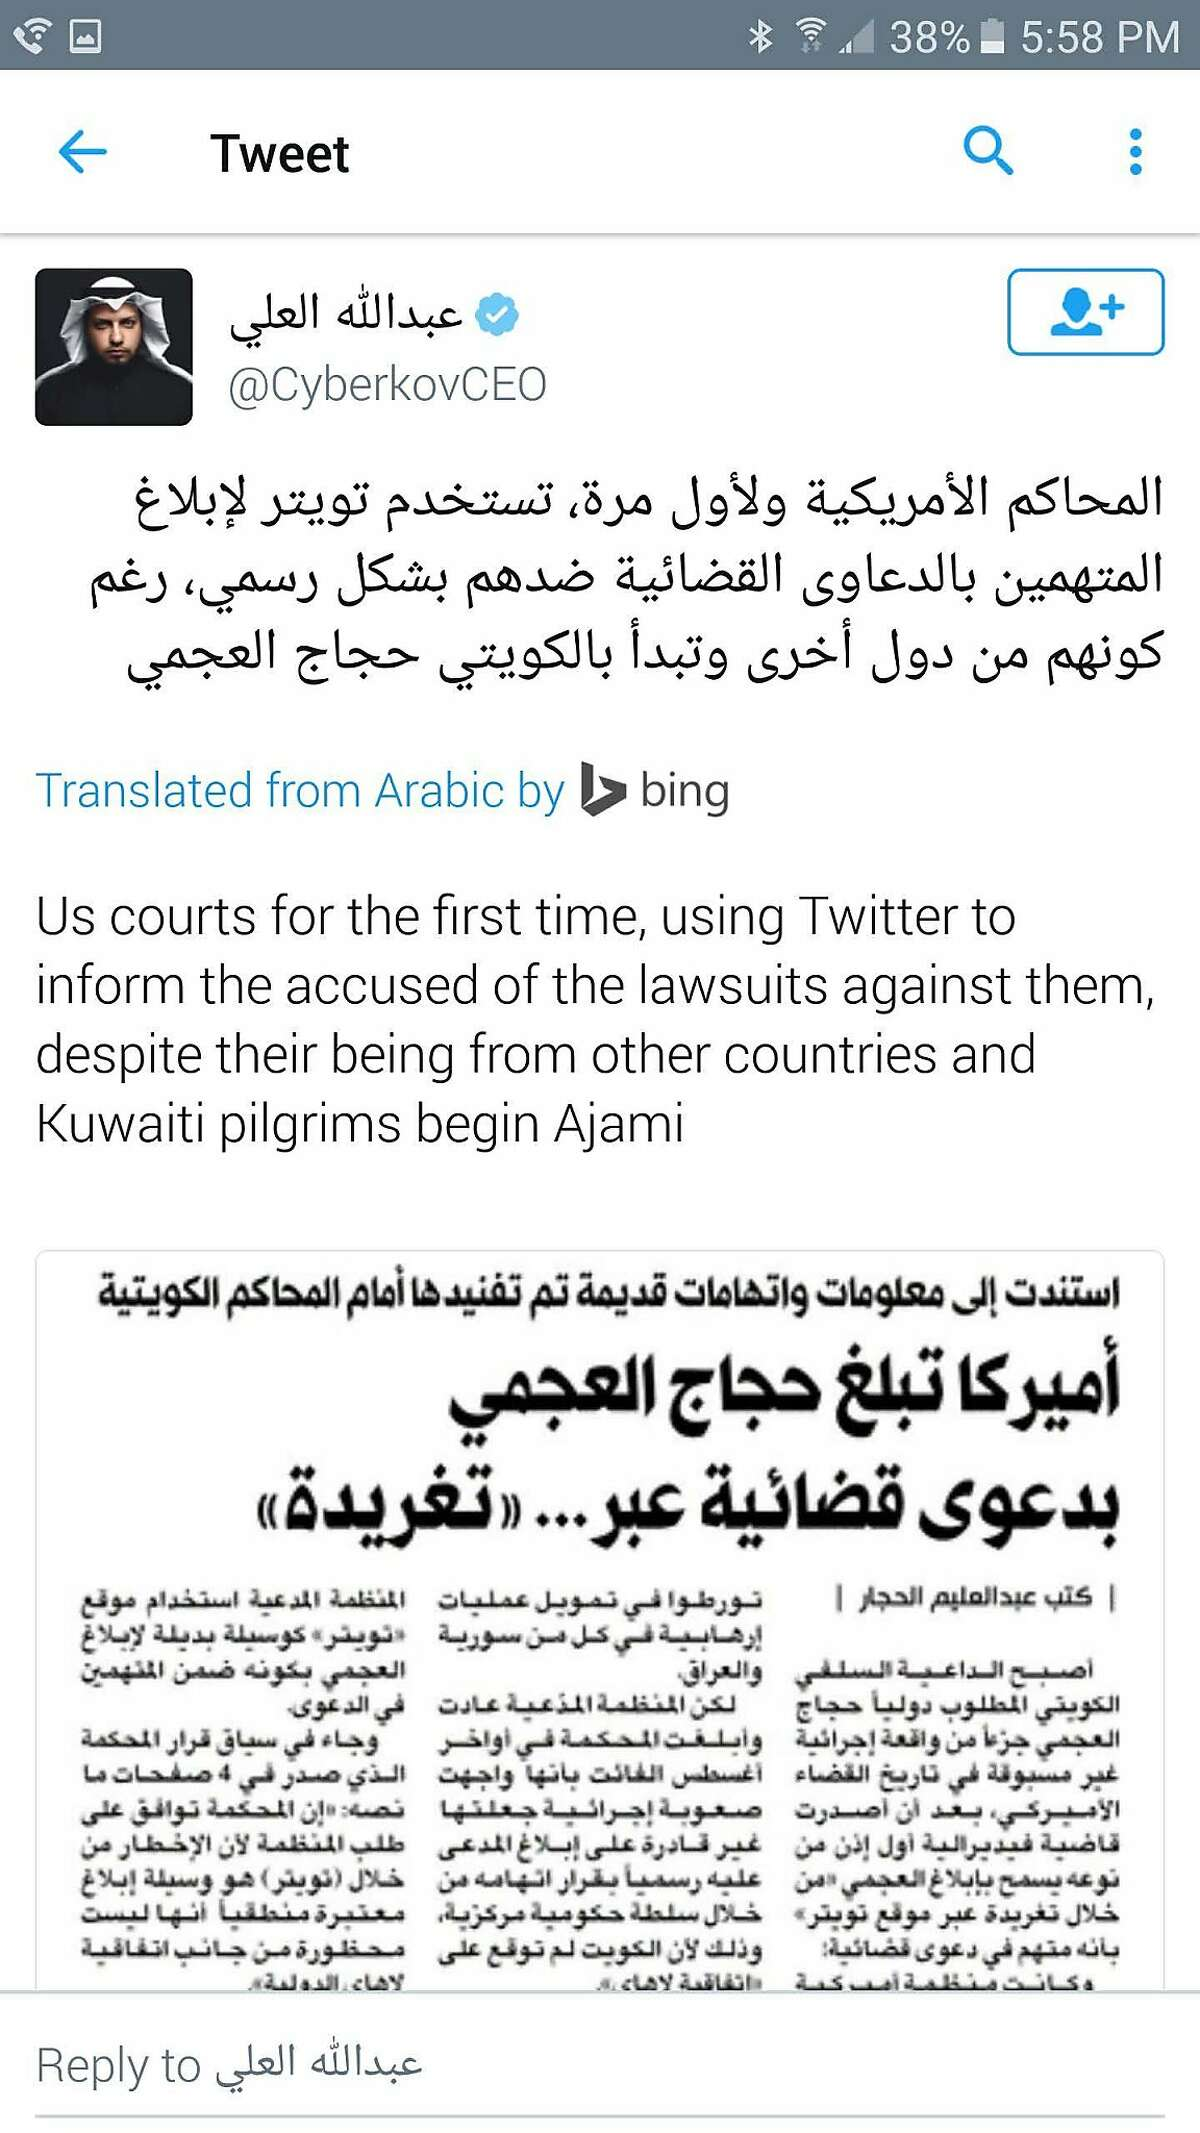 A Twitter screengrab from @CyberKovCEO tweeting the about the story: Representing St. Francis Assisi, Alameda attorney Mogeeb Weiss spent at least a month trying to serve Hajjaj al Ajmi with a lawsuit against him and two Middle Eastern banks.He tried contacting al Ajmi�s local attorney, who didn�t respond. He mailed the process to the Kuwaiti government, which he said rejected the package. Weiss suspected al Ajmi was hiding in Kuwait because he appeared on lists of individuals sanctioned by the United Nations and U.S. Department of Treasury.